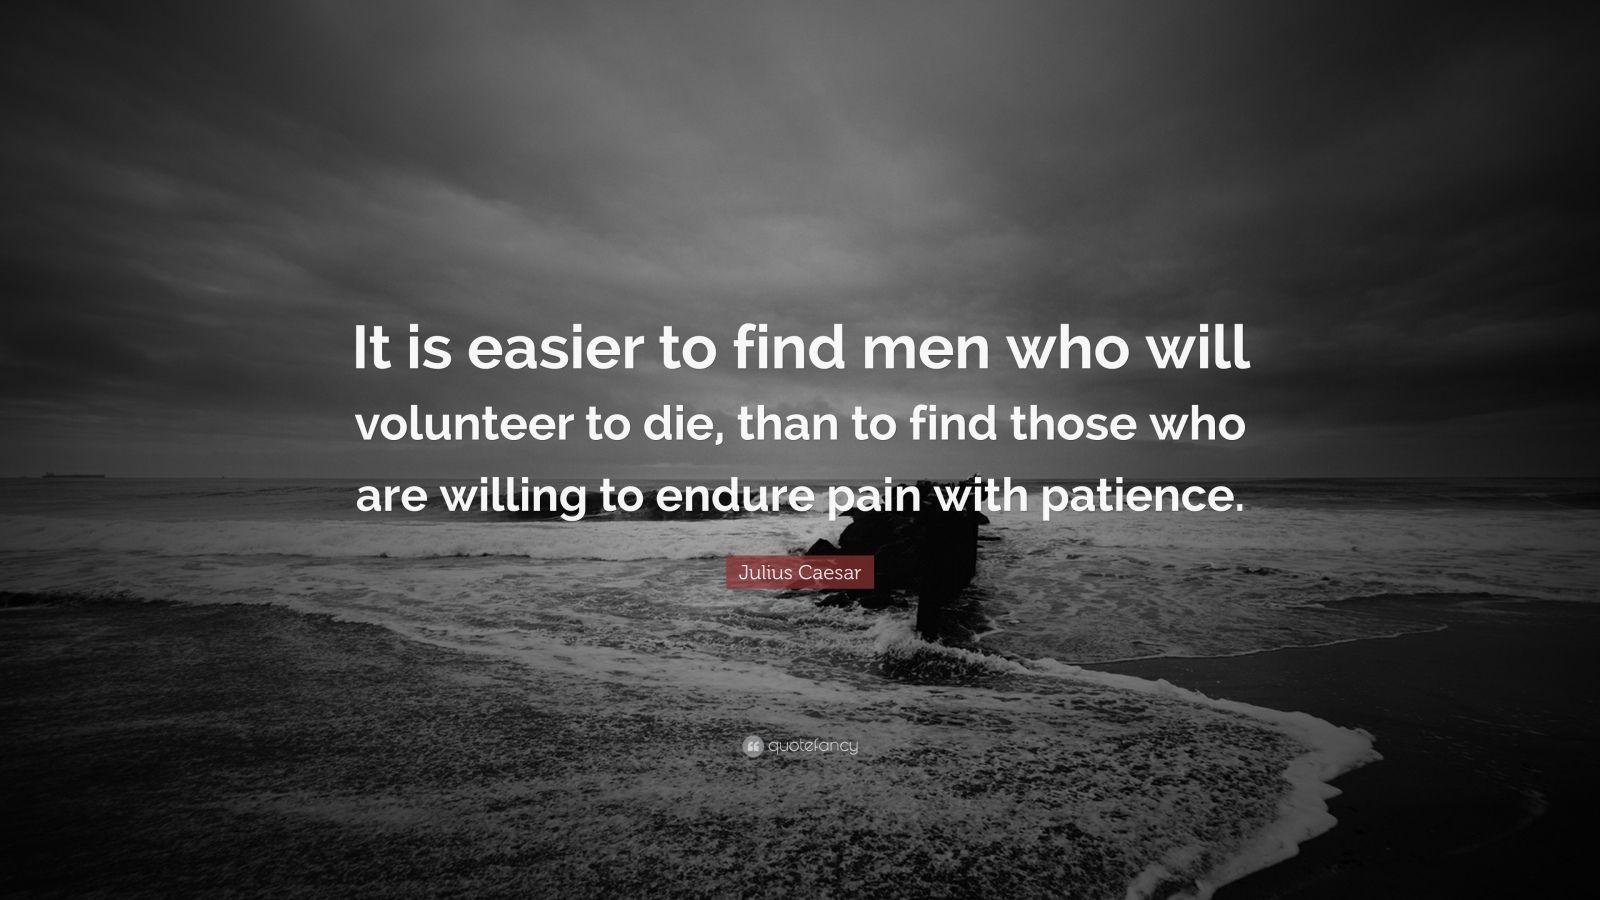 """Julius Caesar Quote: """"It is easier to find men who will volunteer to die, than to find those who are willing to endure pain with patience."""""""